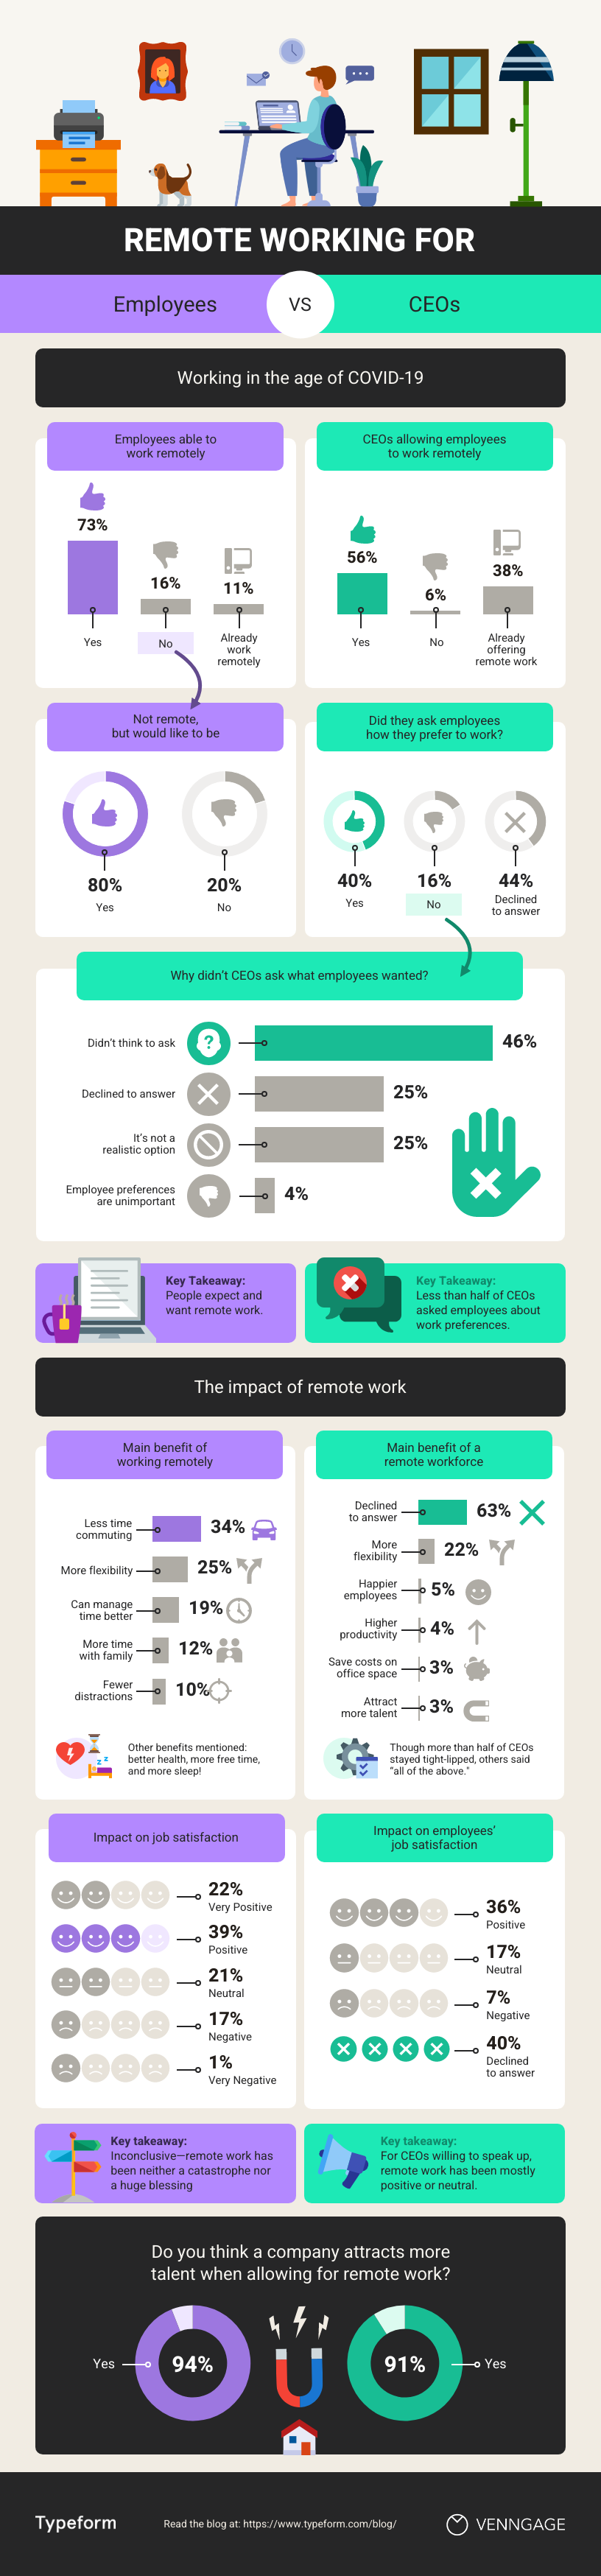 Product Infographic Remote Working Employee vs CEO